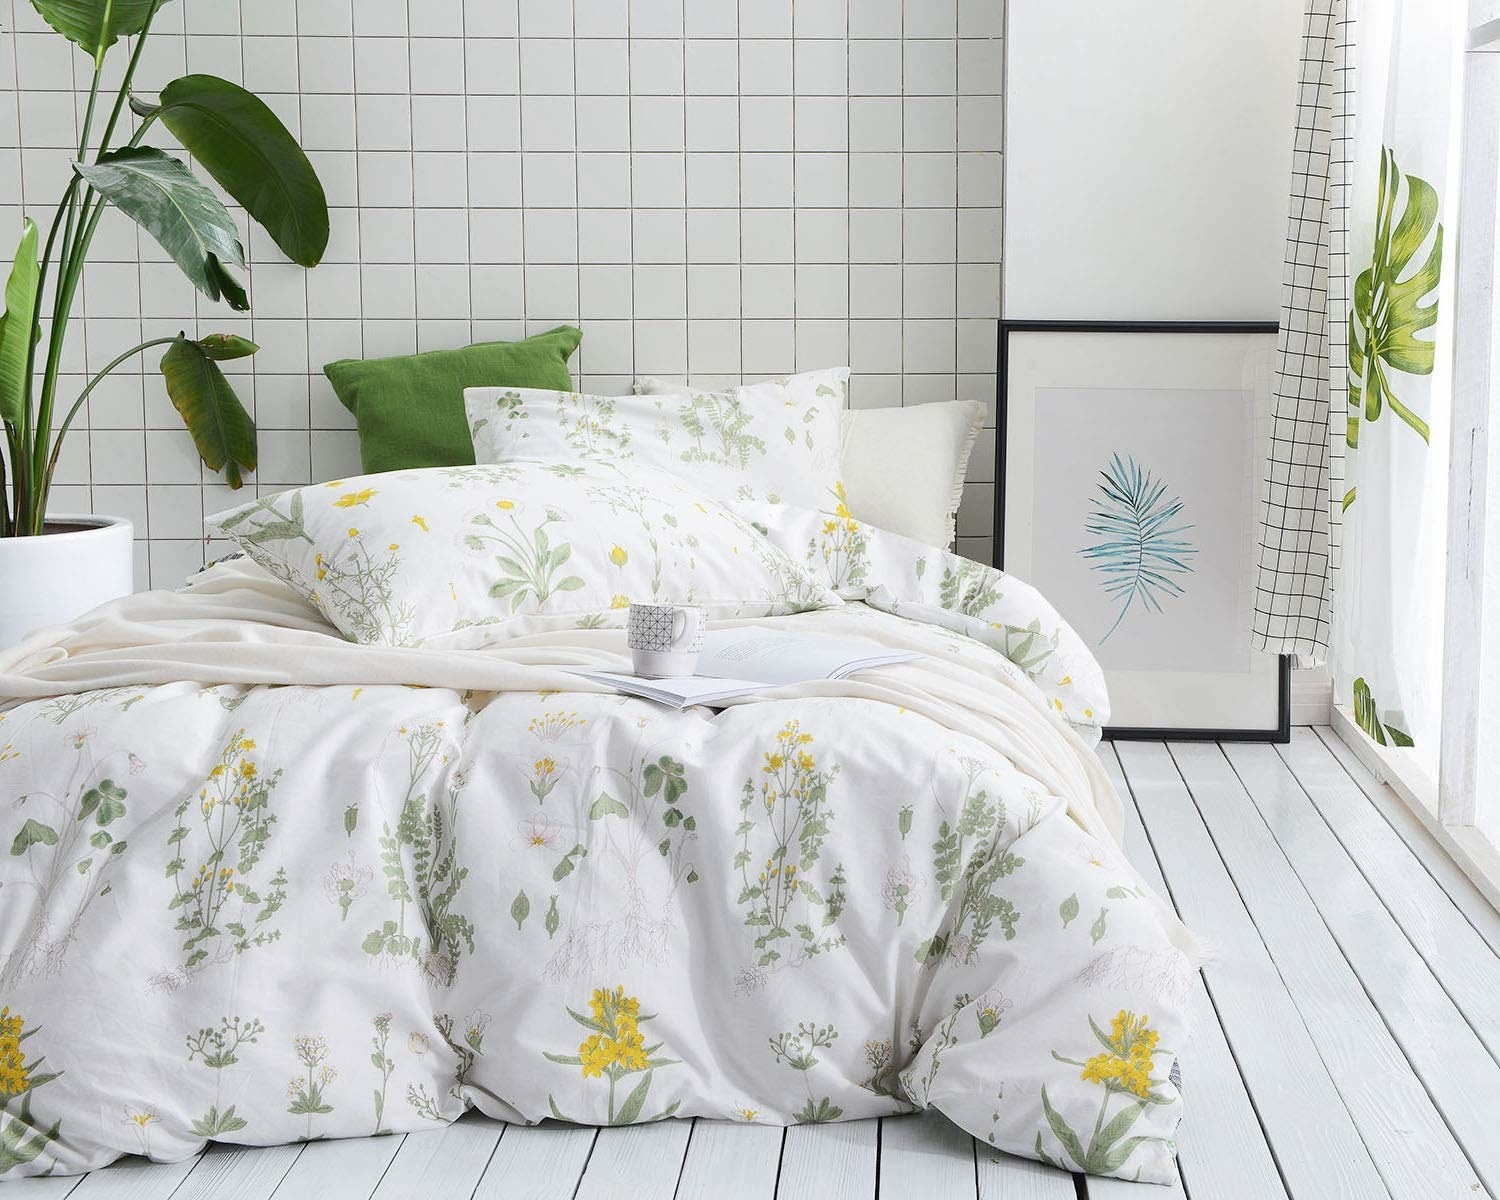 White bedding with green and yellow vintage floral print